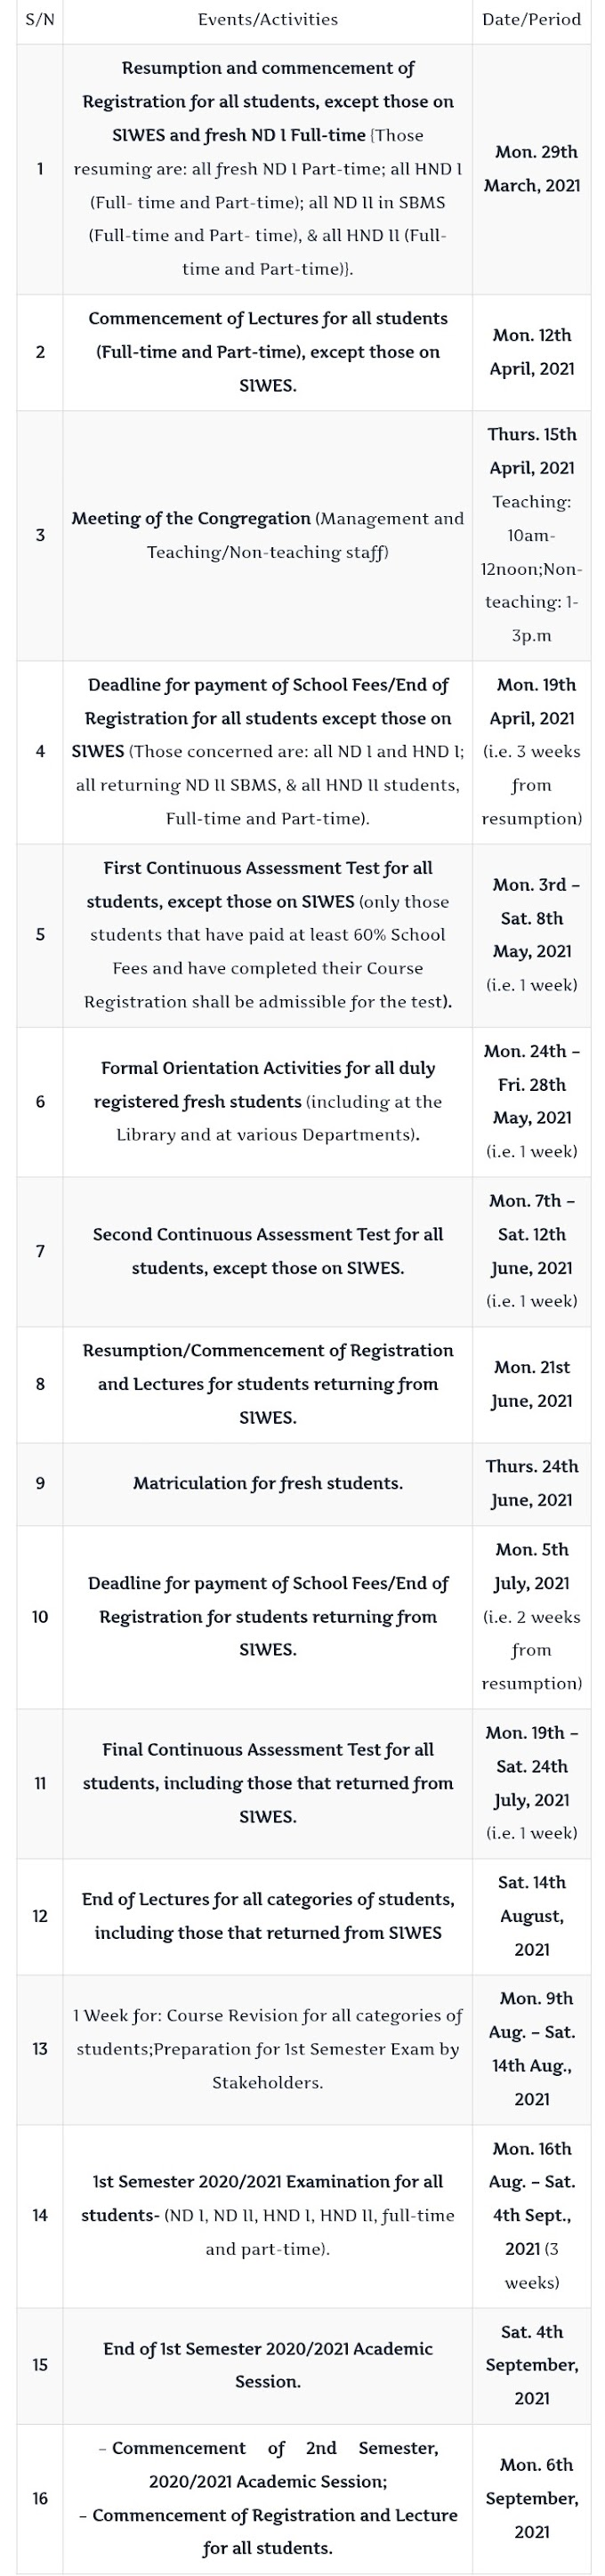 MAPOLY Academic Calendar for 2020/2021 Session is Out